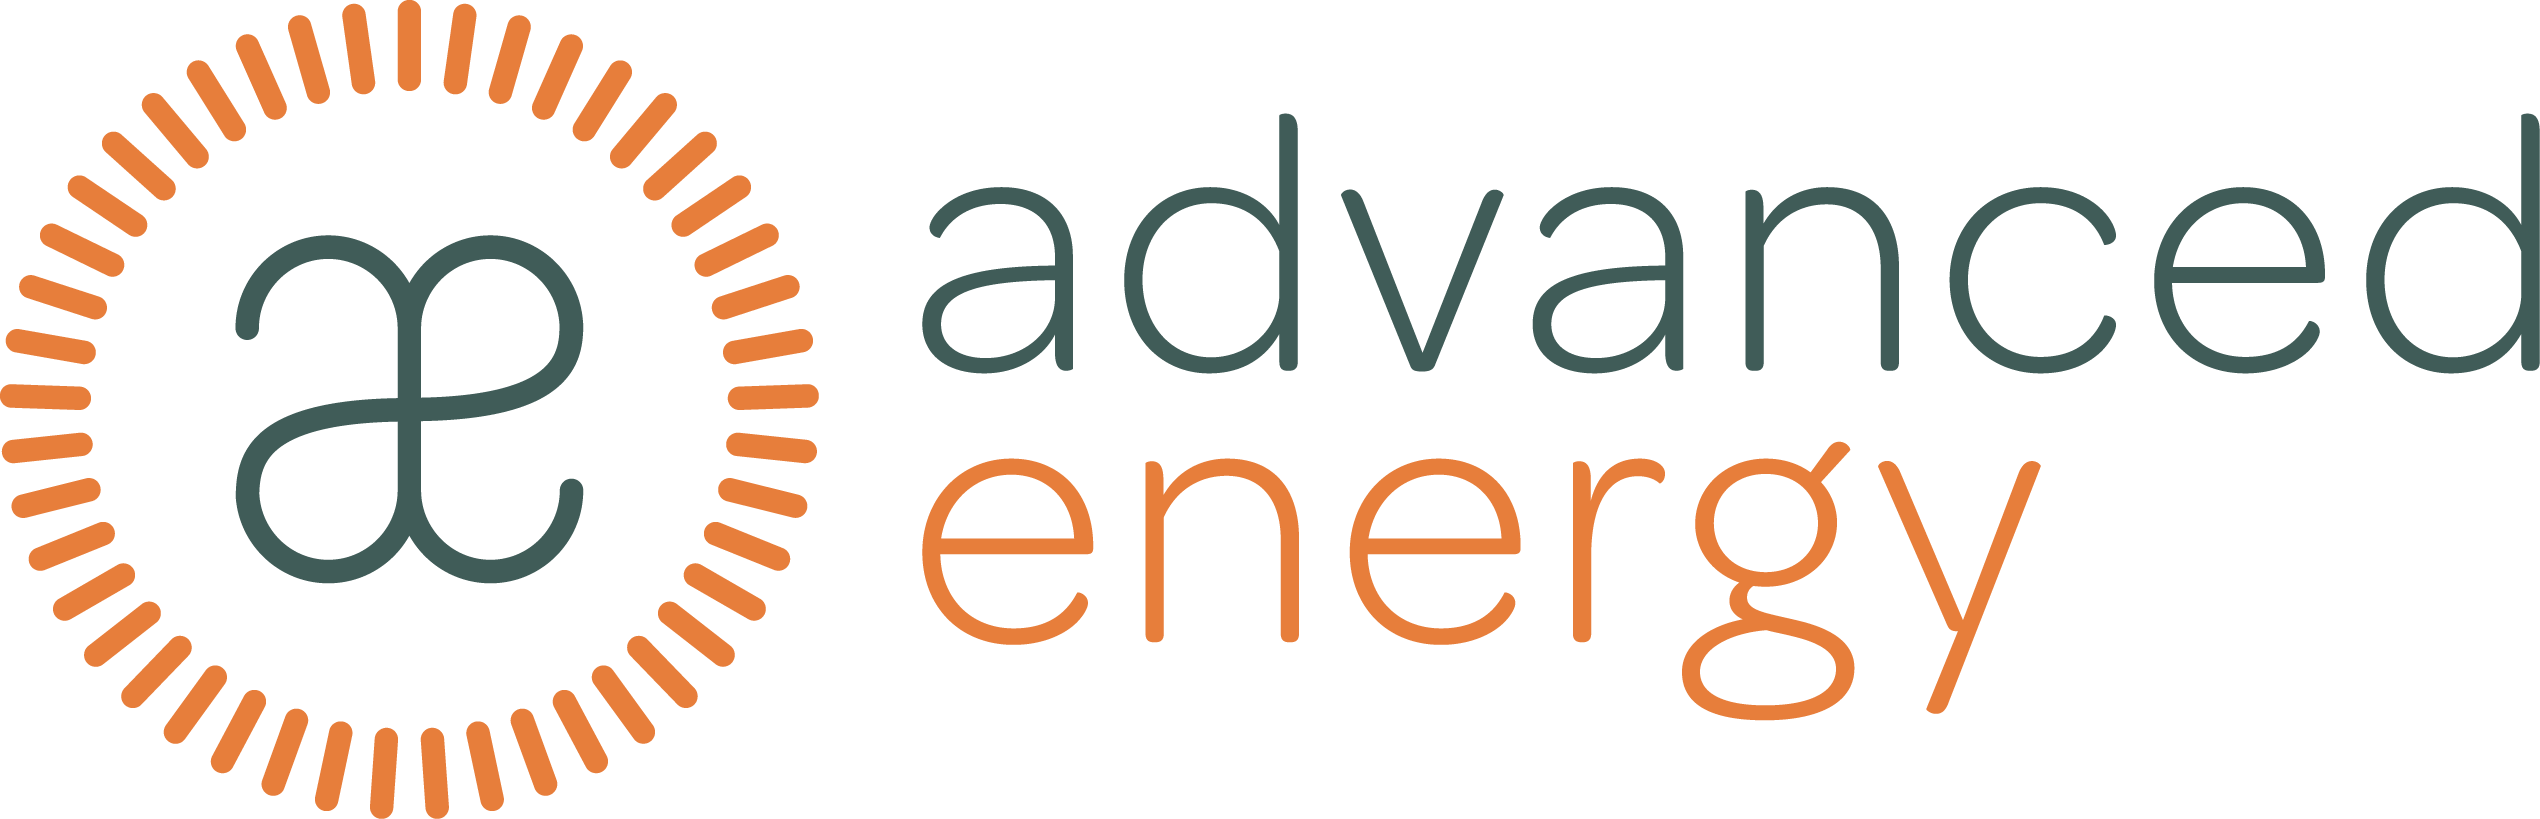 AdvancedEnergy_Logo_horiz_0.png